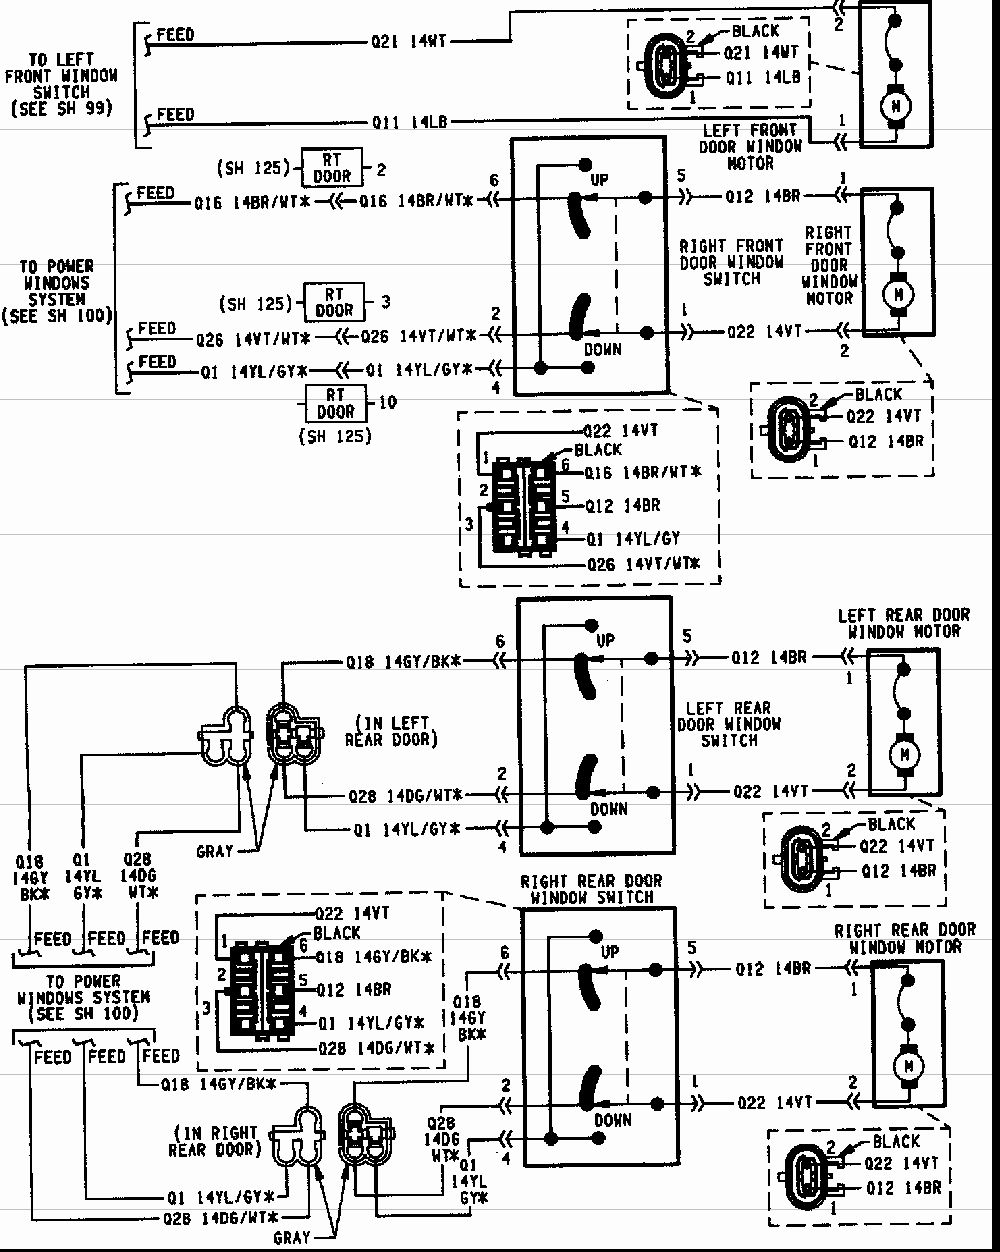 medium resolution of 2003 jeep grand cherokee radio wiring diagram 2002 grand cherokee radio wiring chart trusted diagrams